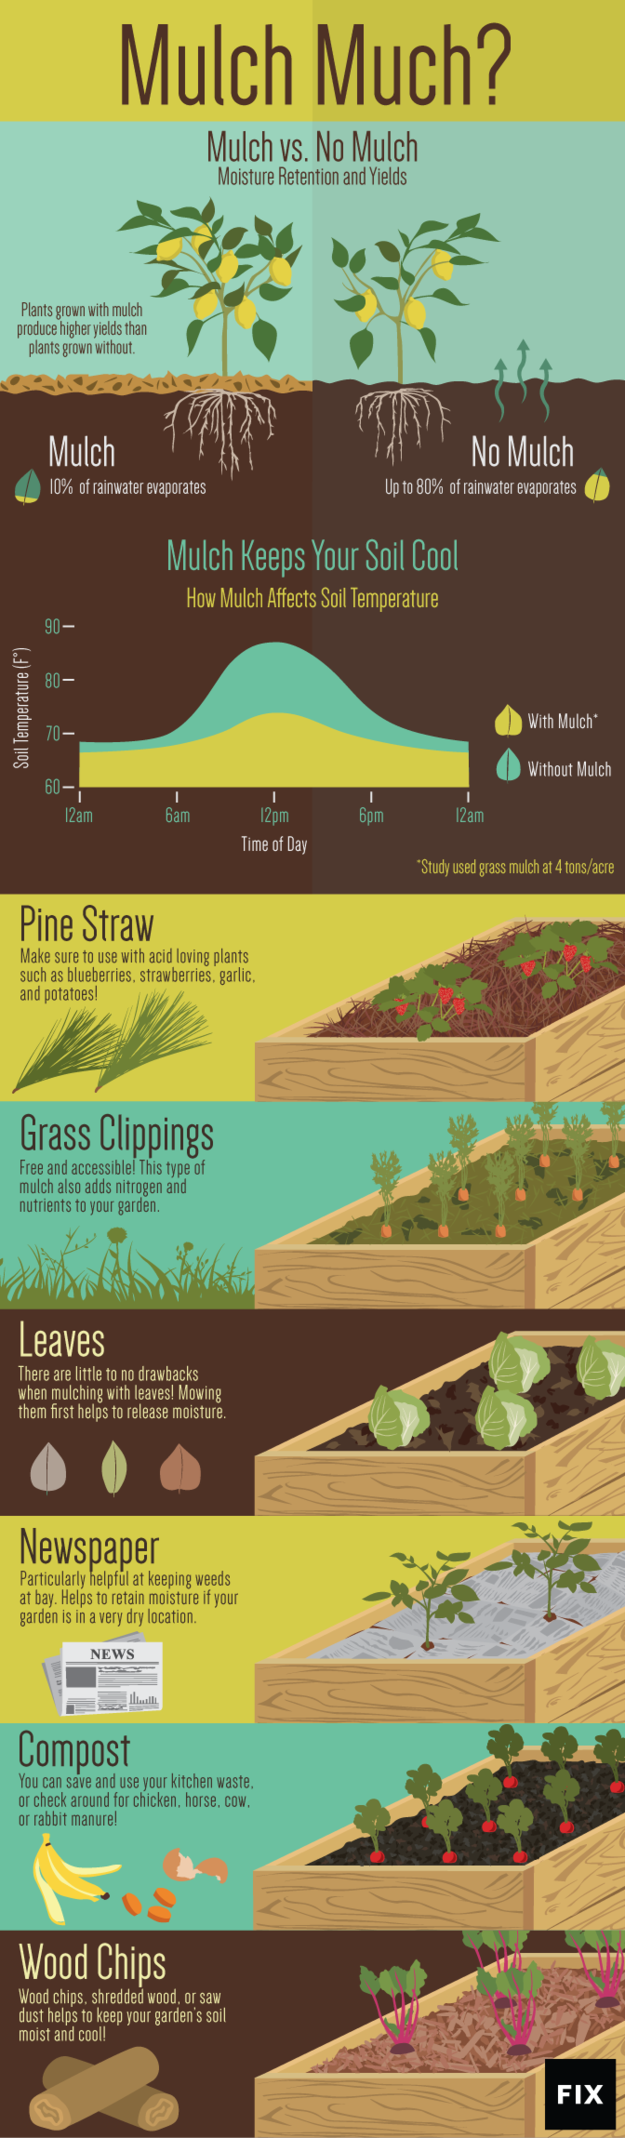 Photo of Leaves, grass clippings, newspaper: Become a mulch master with this chart.